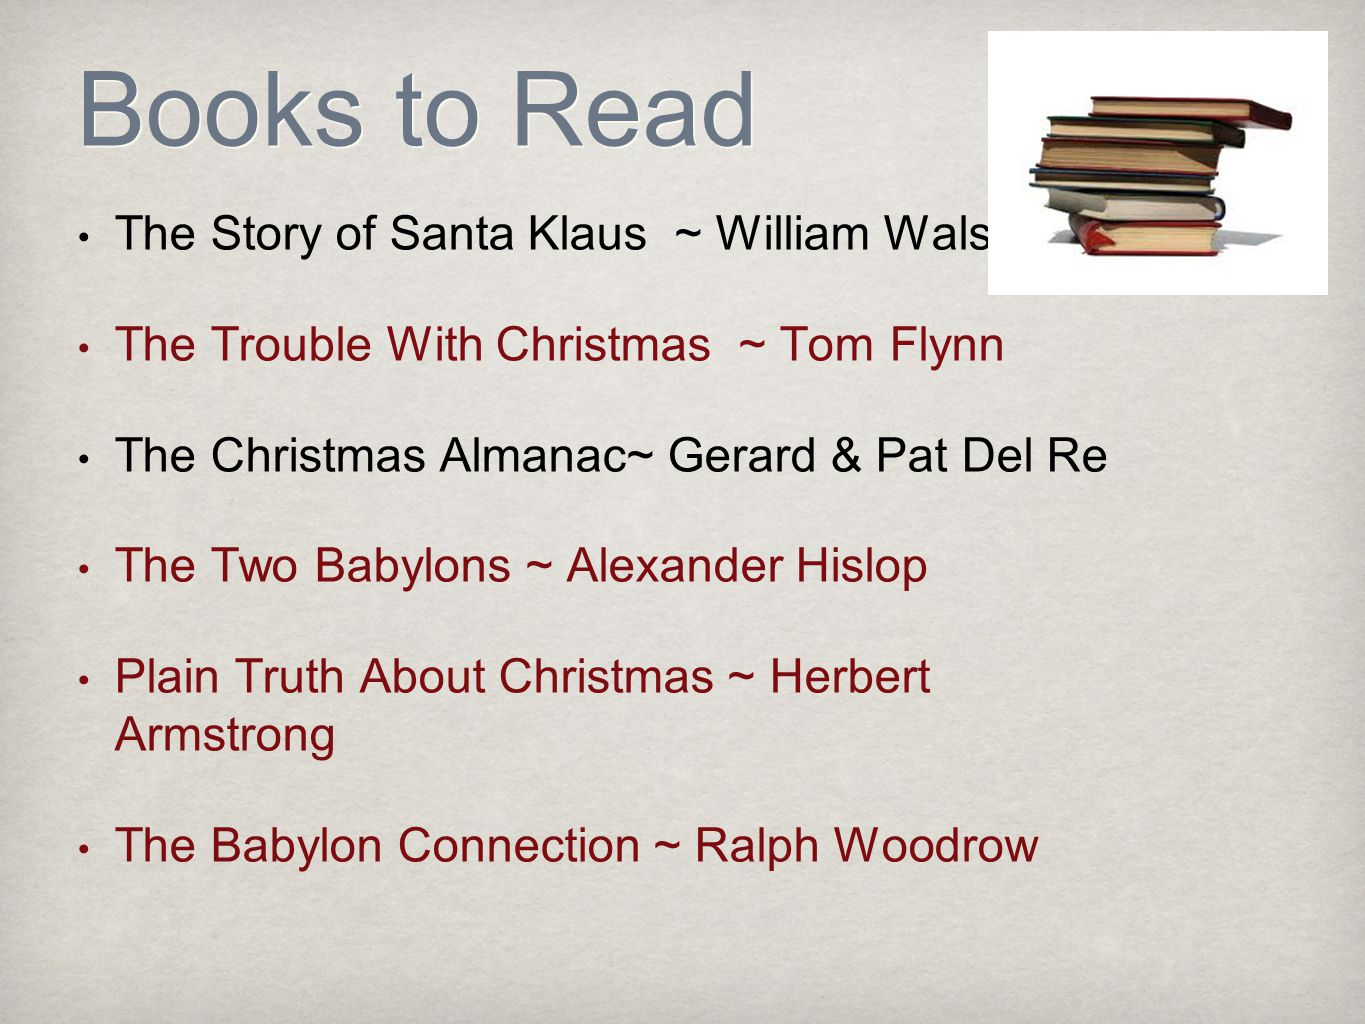 Books to Read The Story of Santa Klaus ~ William Walsh The Trouble With Christmas ~ Tom Flynn The Christmas Almanac~ Gerard & Pat Del Re The Two Babylons ~ Alexander Hislop Plain Truth About Christmas ~ Herbert Armstrong The Babylon Connection ~ Ralph Woodrow